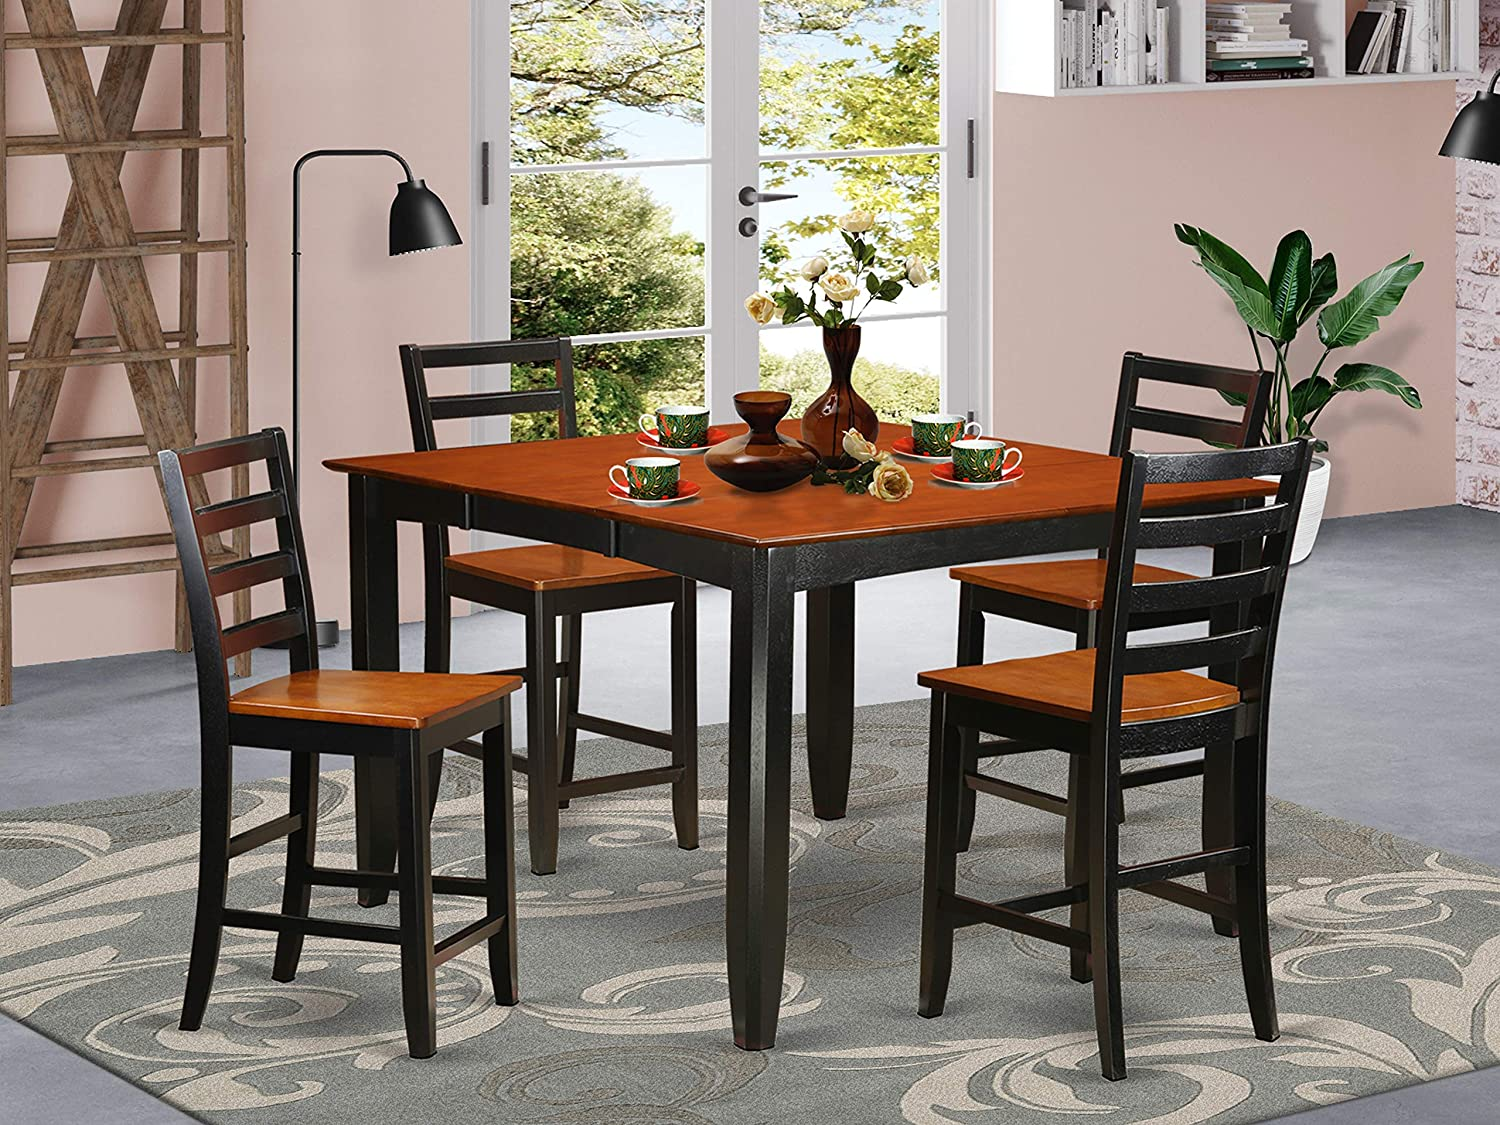 Amazon Com 5 Pc Counter Height Dining Set Square Counter Height Table And 4 Dining Chairs Table Chair Sets